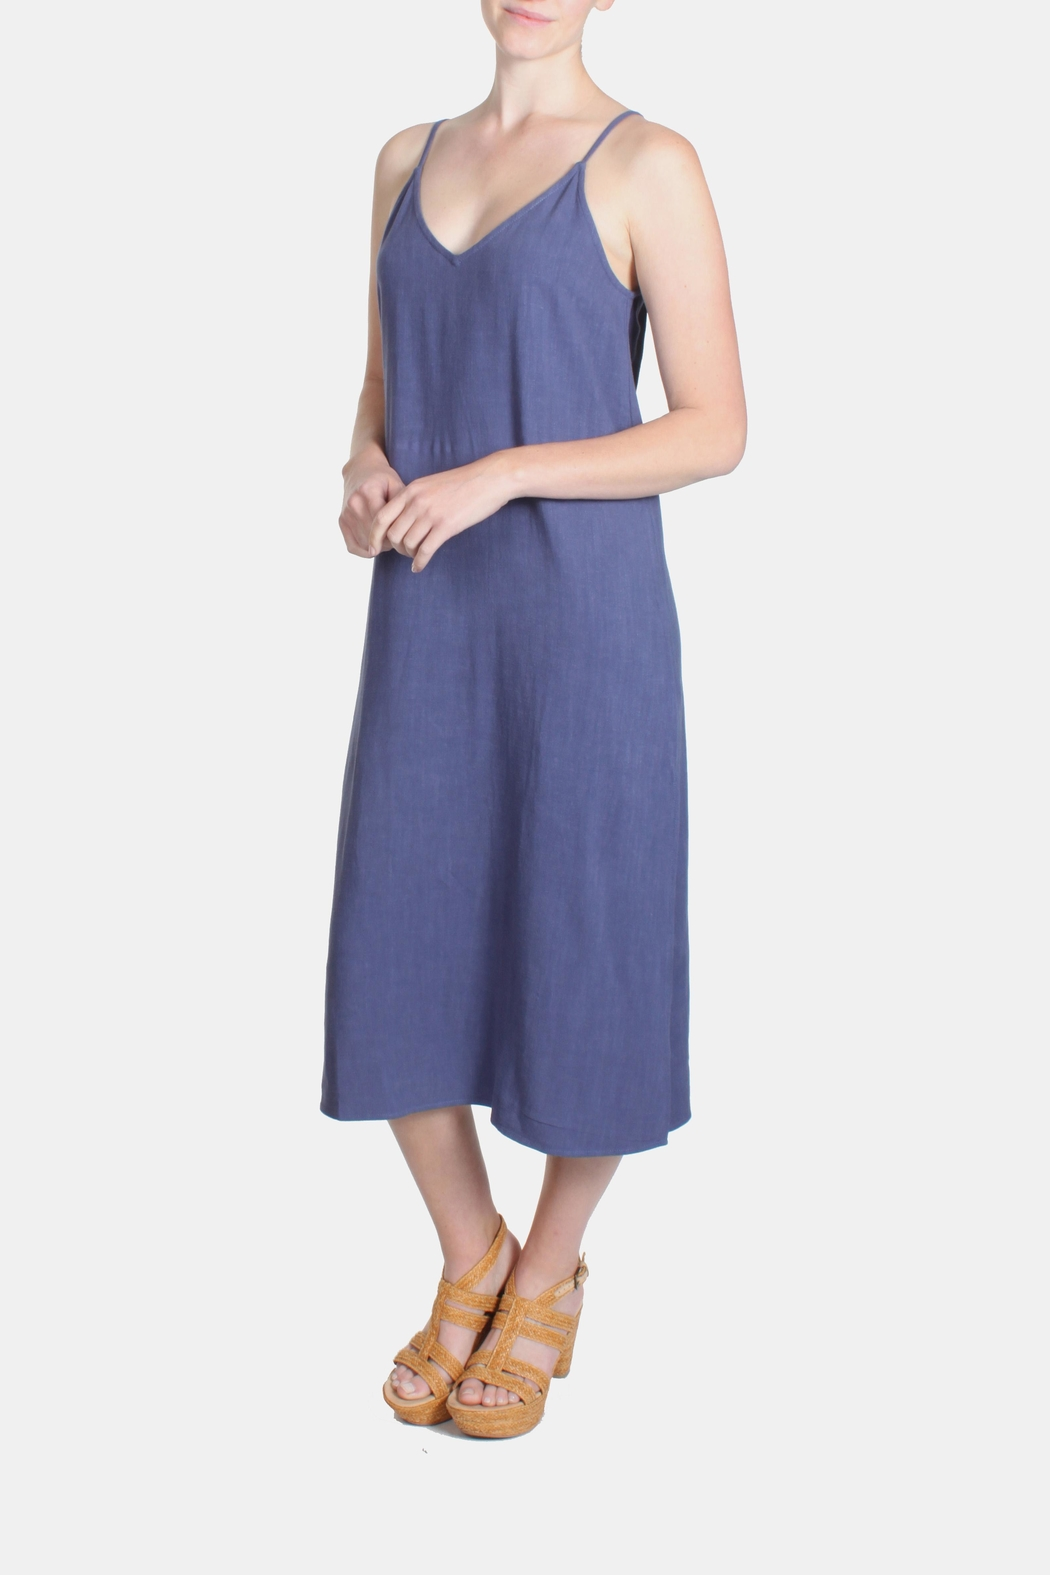 Jella Couture Periwinkle Linen Slip Dress - Side Cropped Image